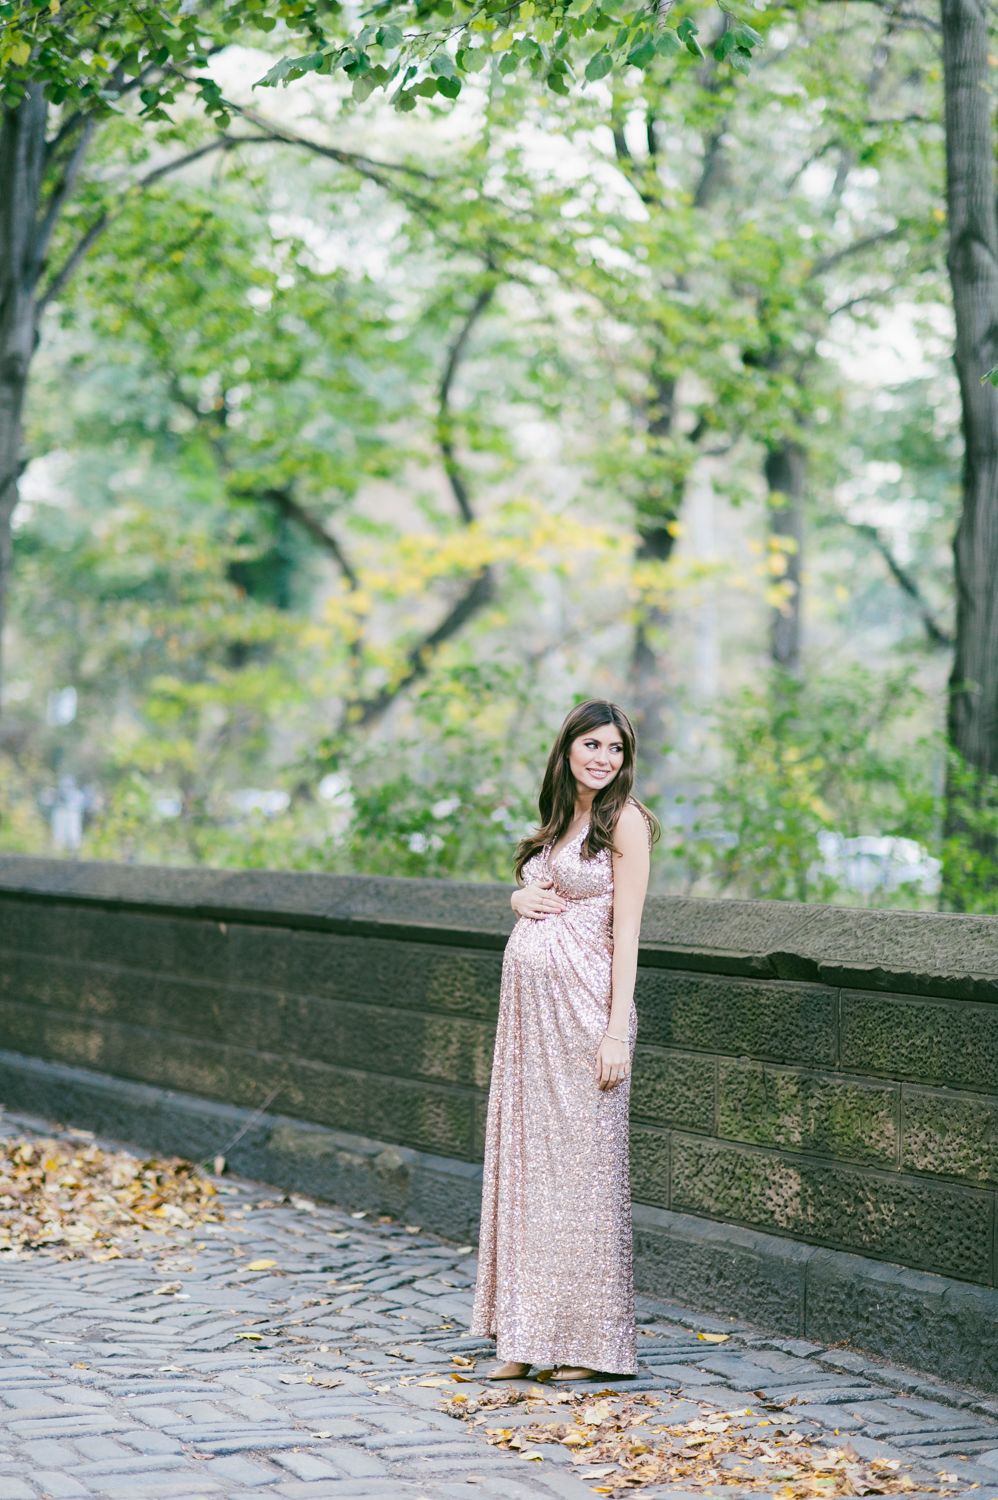 CentralPark.Manhattan.Maternity.Photography.SL7.jpg